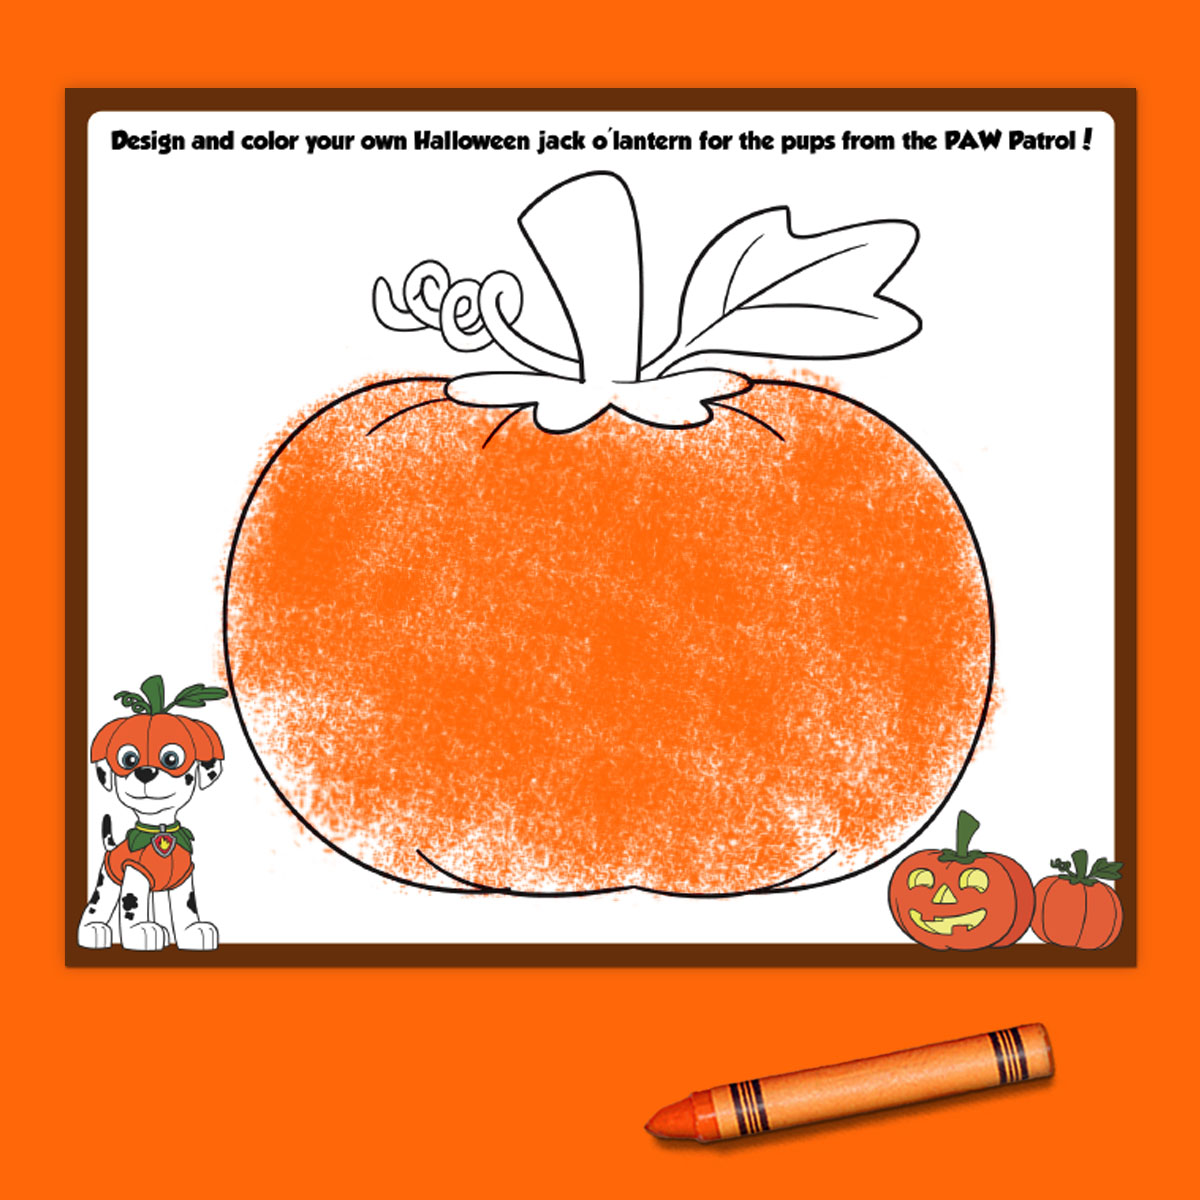 PAW Patrol Draw a Pumpkin Printable